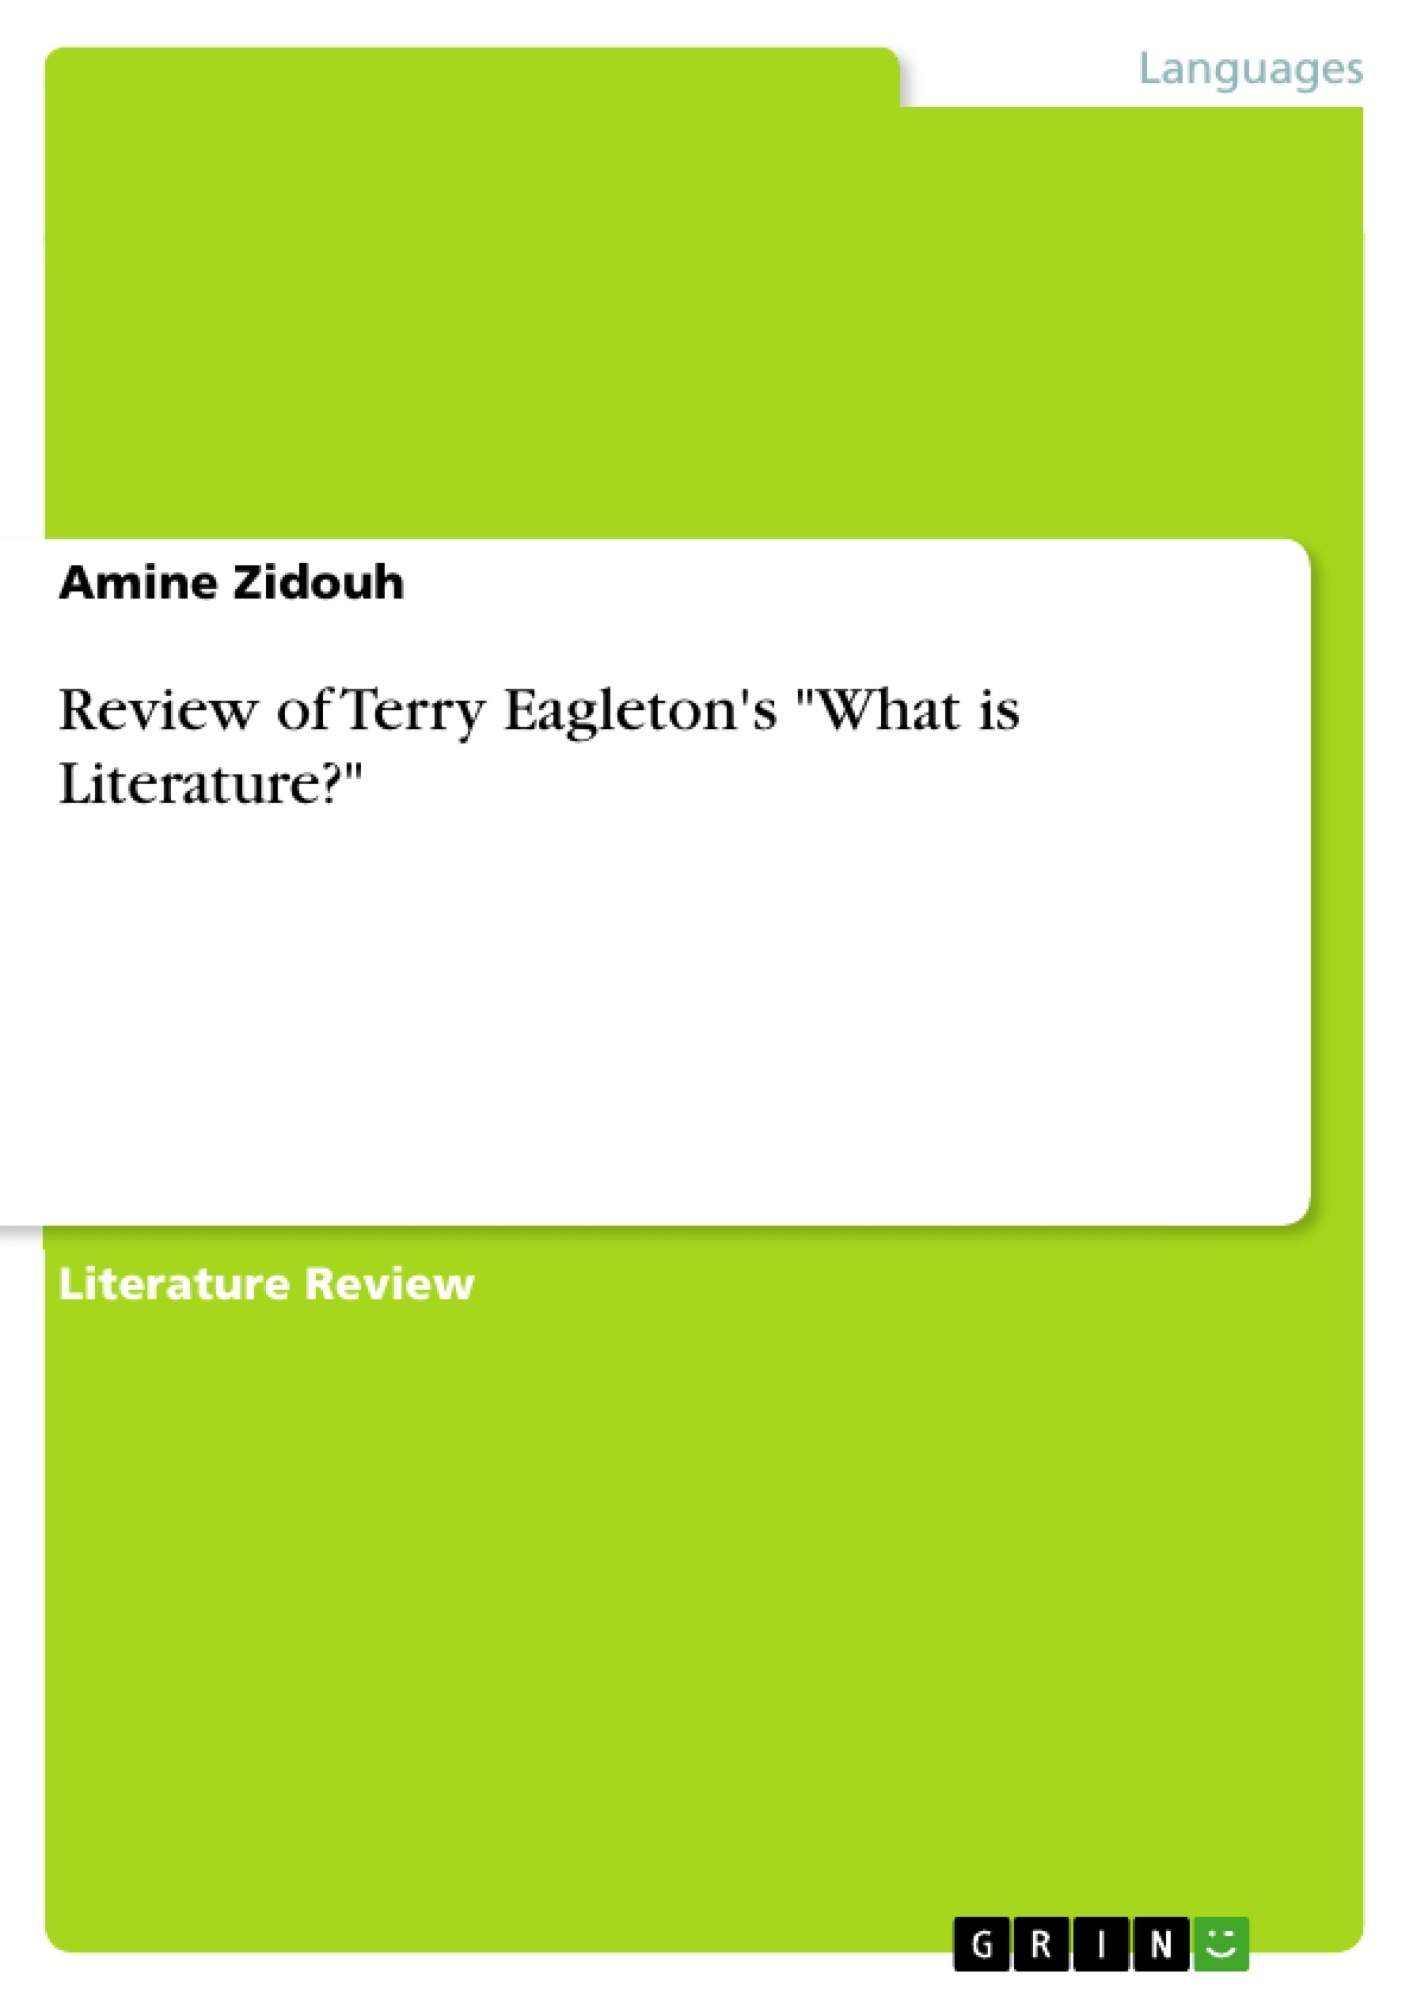 review of terry eagleton s what is literature publish your review of terry eagleton s what is literature publish your master s thesis bachelor s thesis essay or term paper